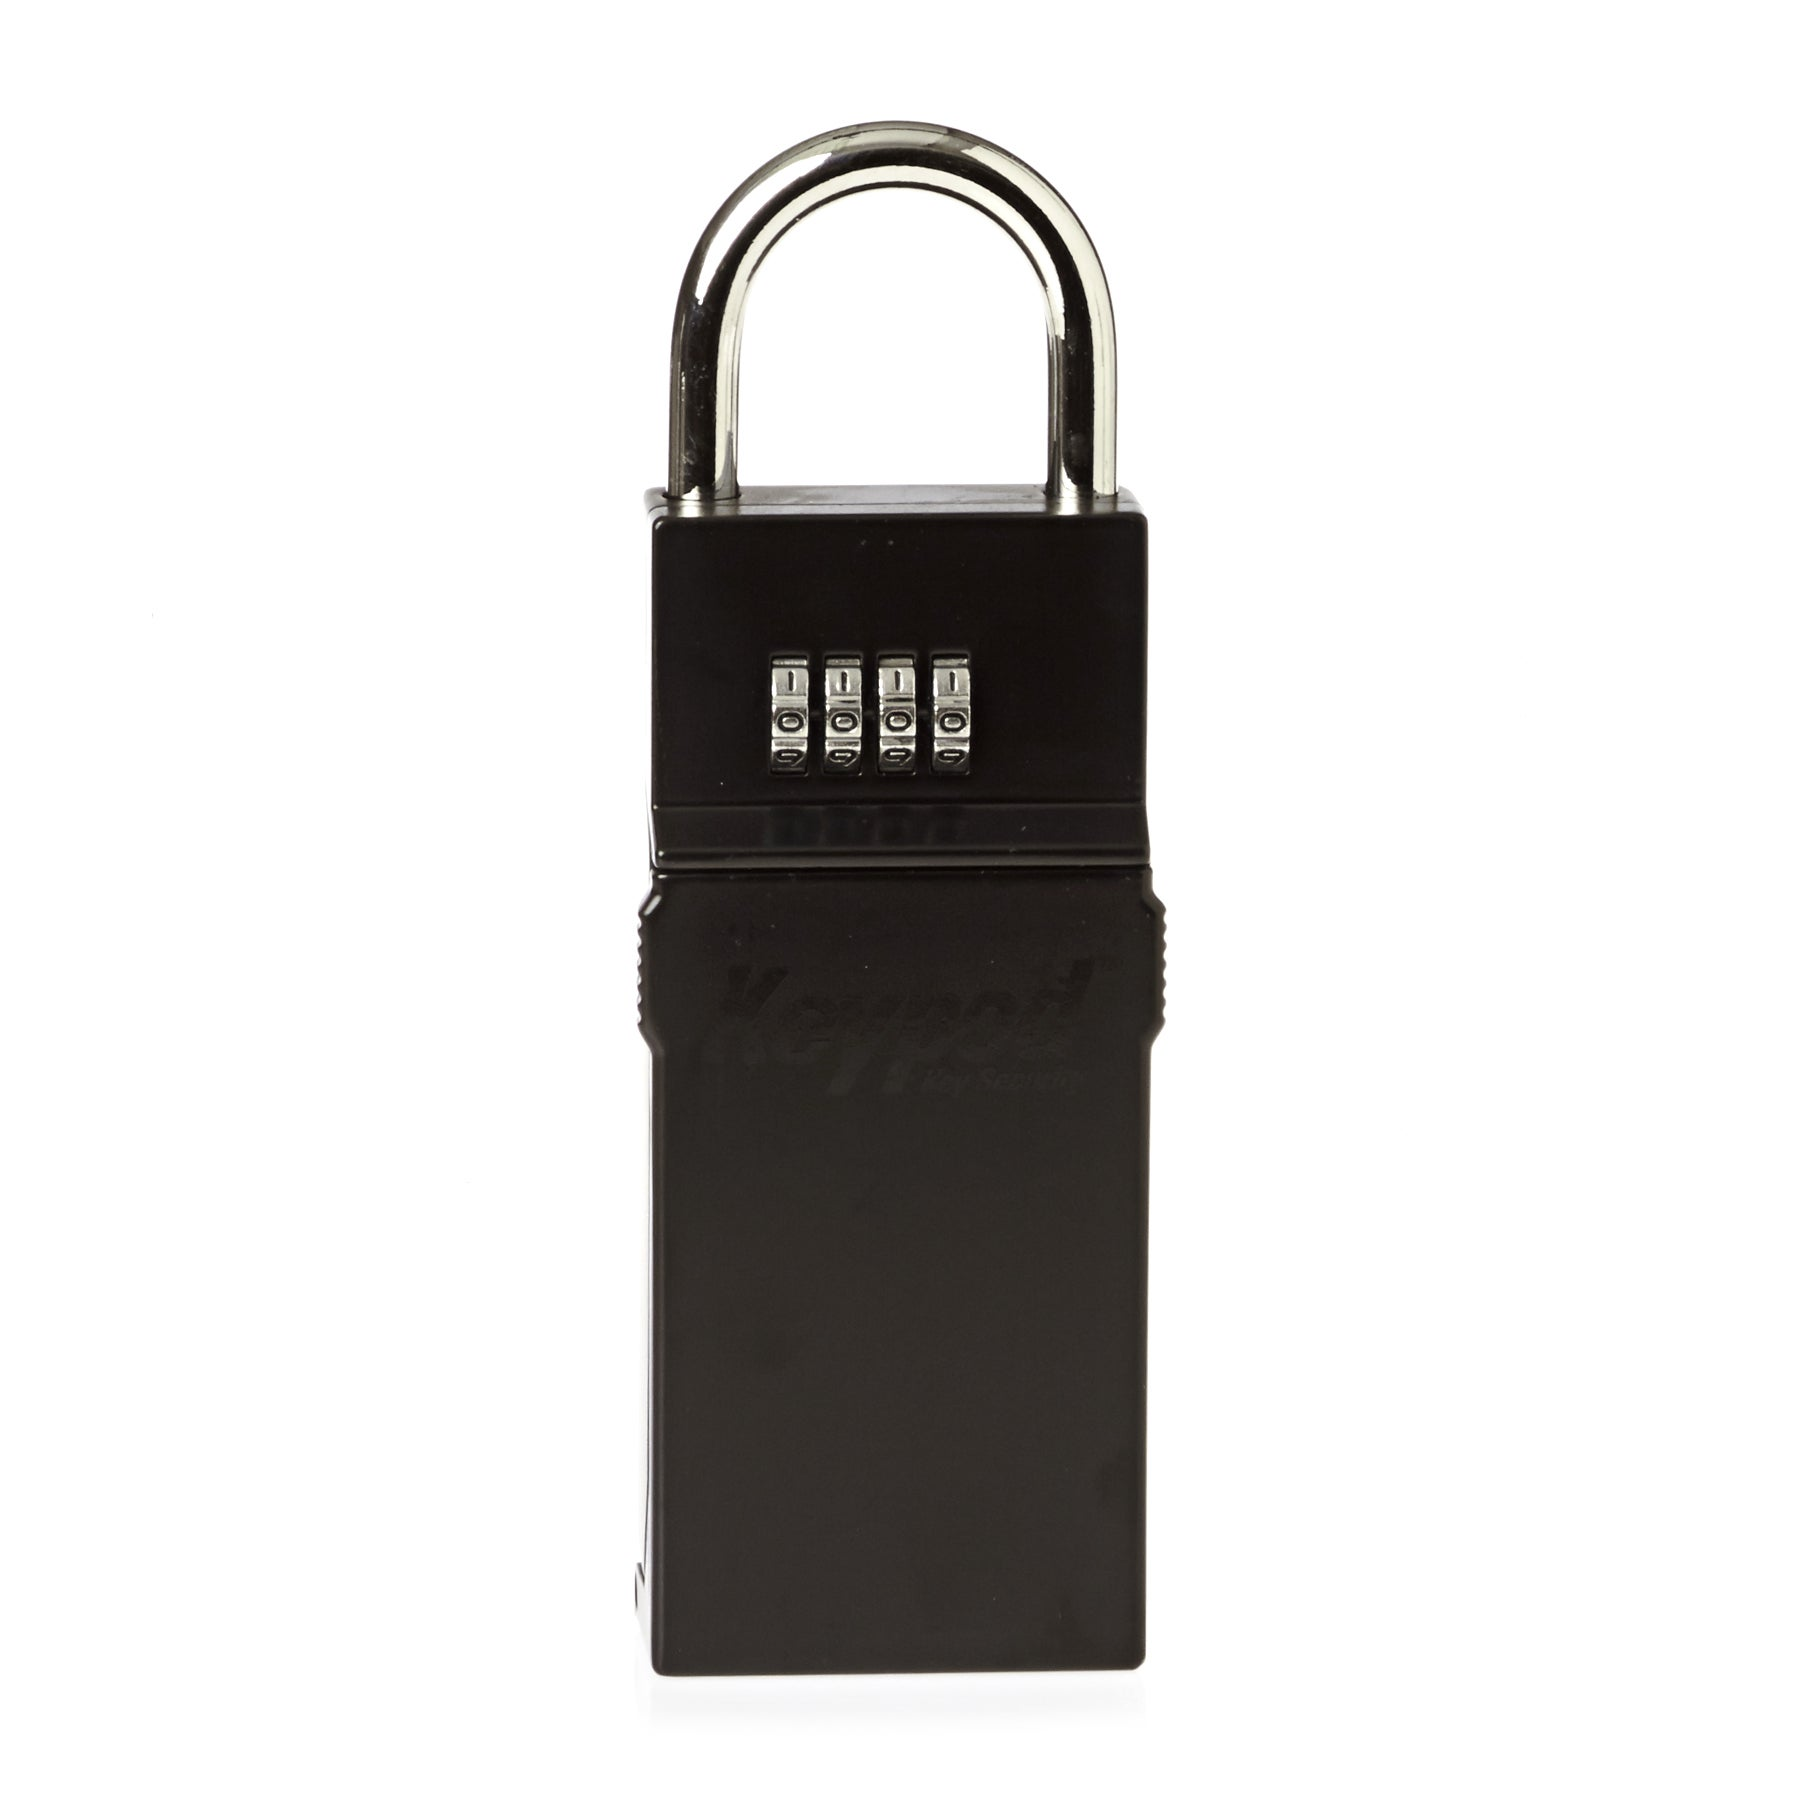 Northcore Keypod Key Safe Surf Lock - Black